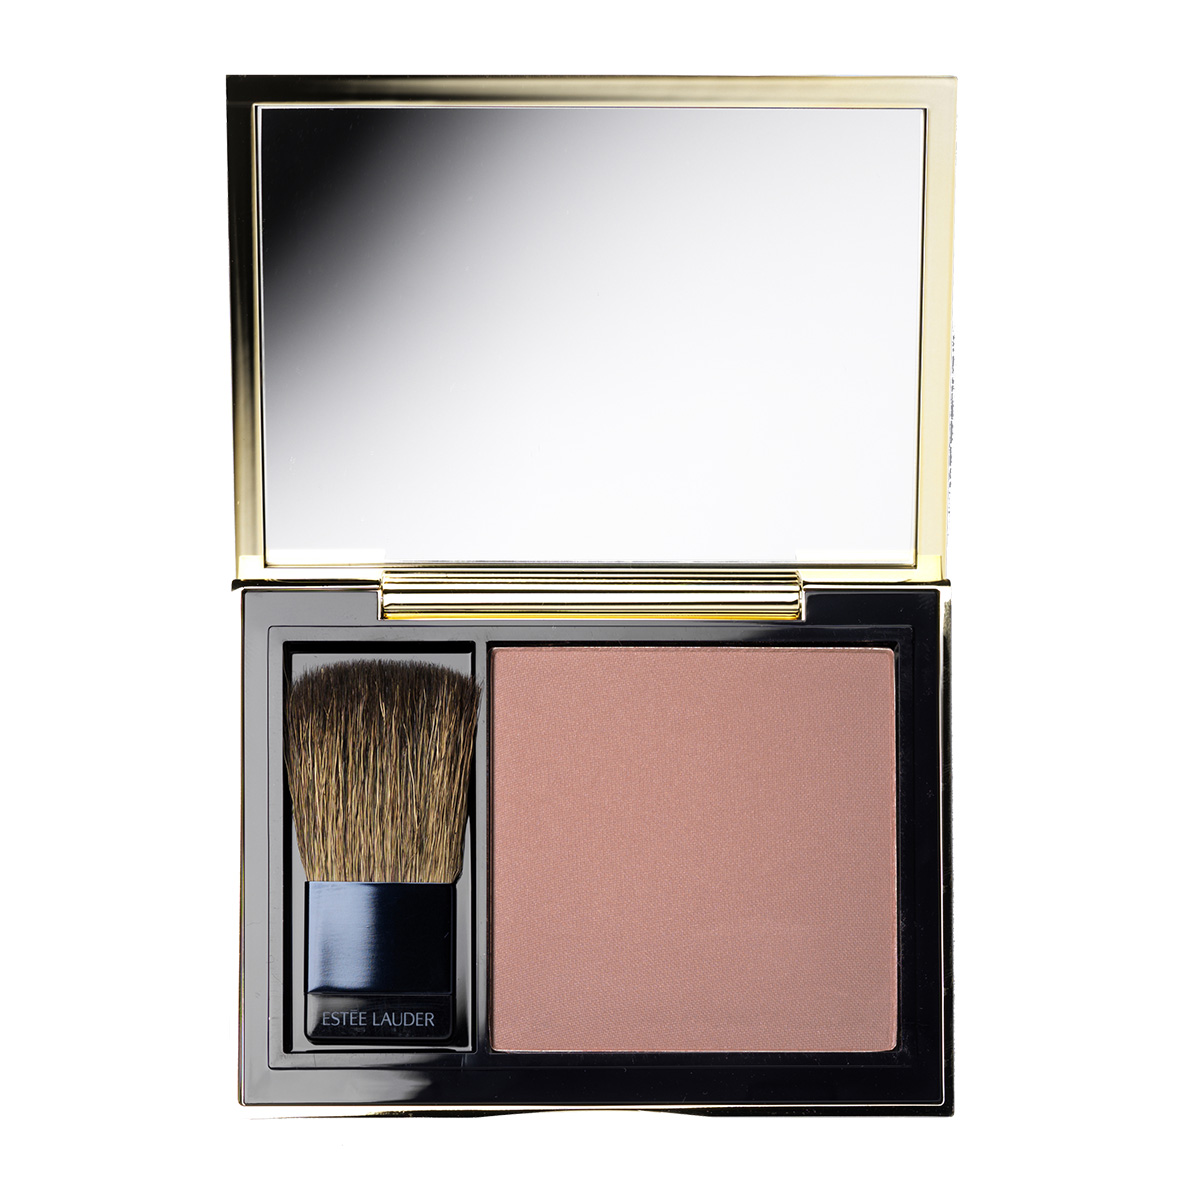 Estée Lauder Pure Color Envy Blush